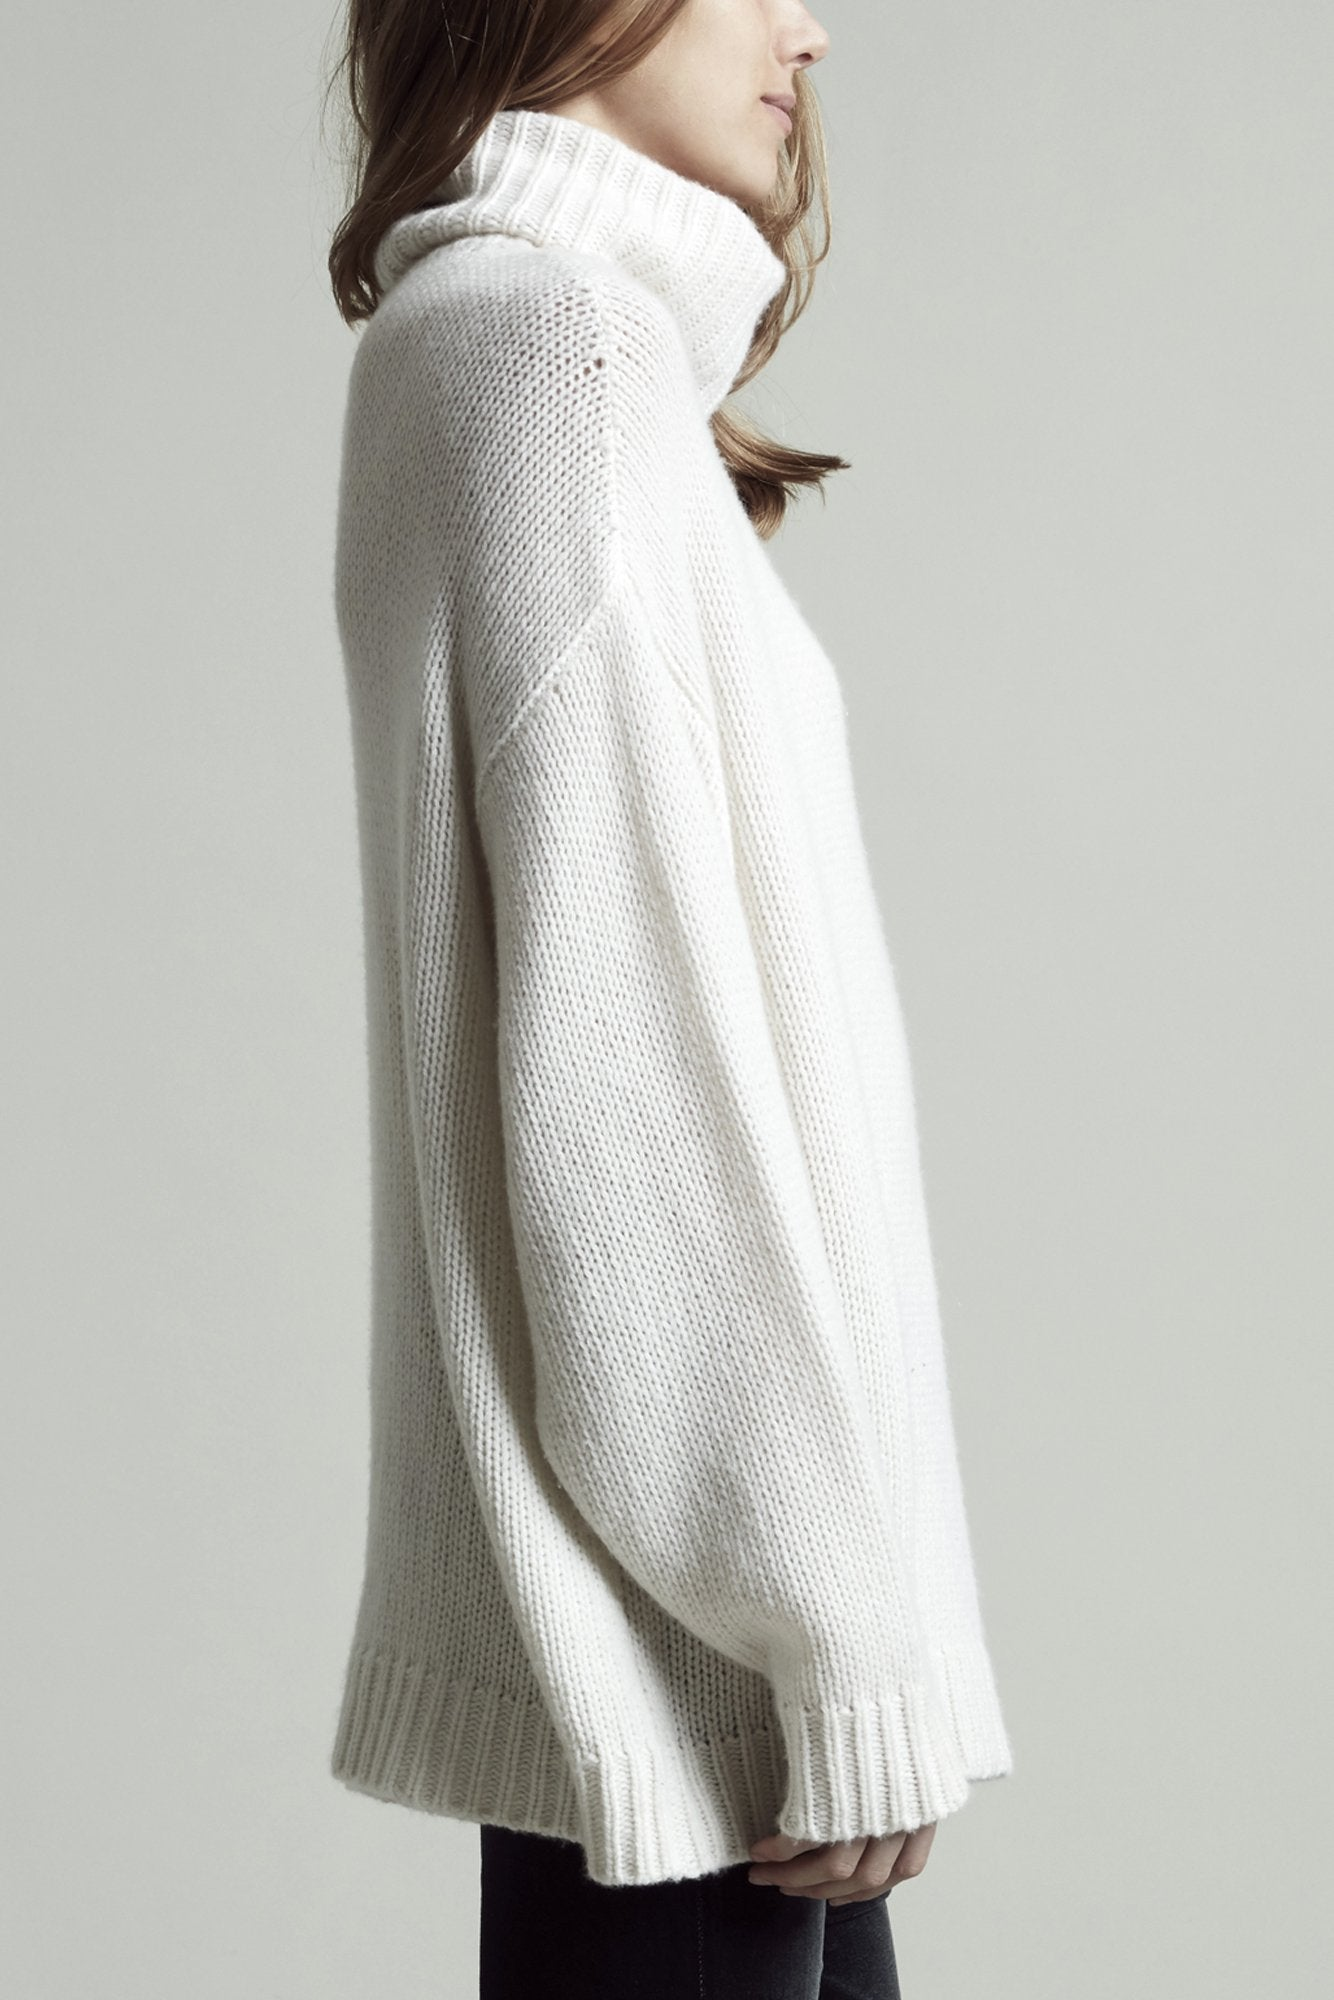 Cashmere Turtleneck - White